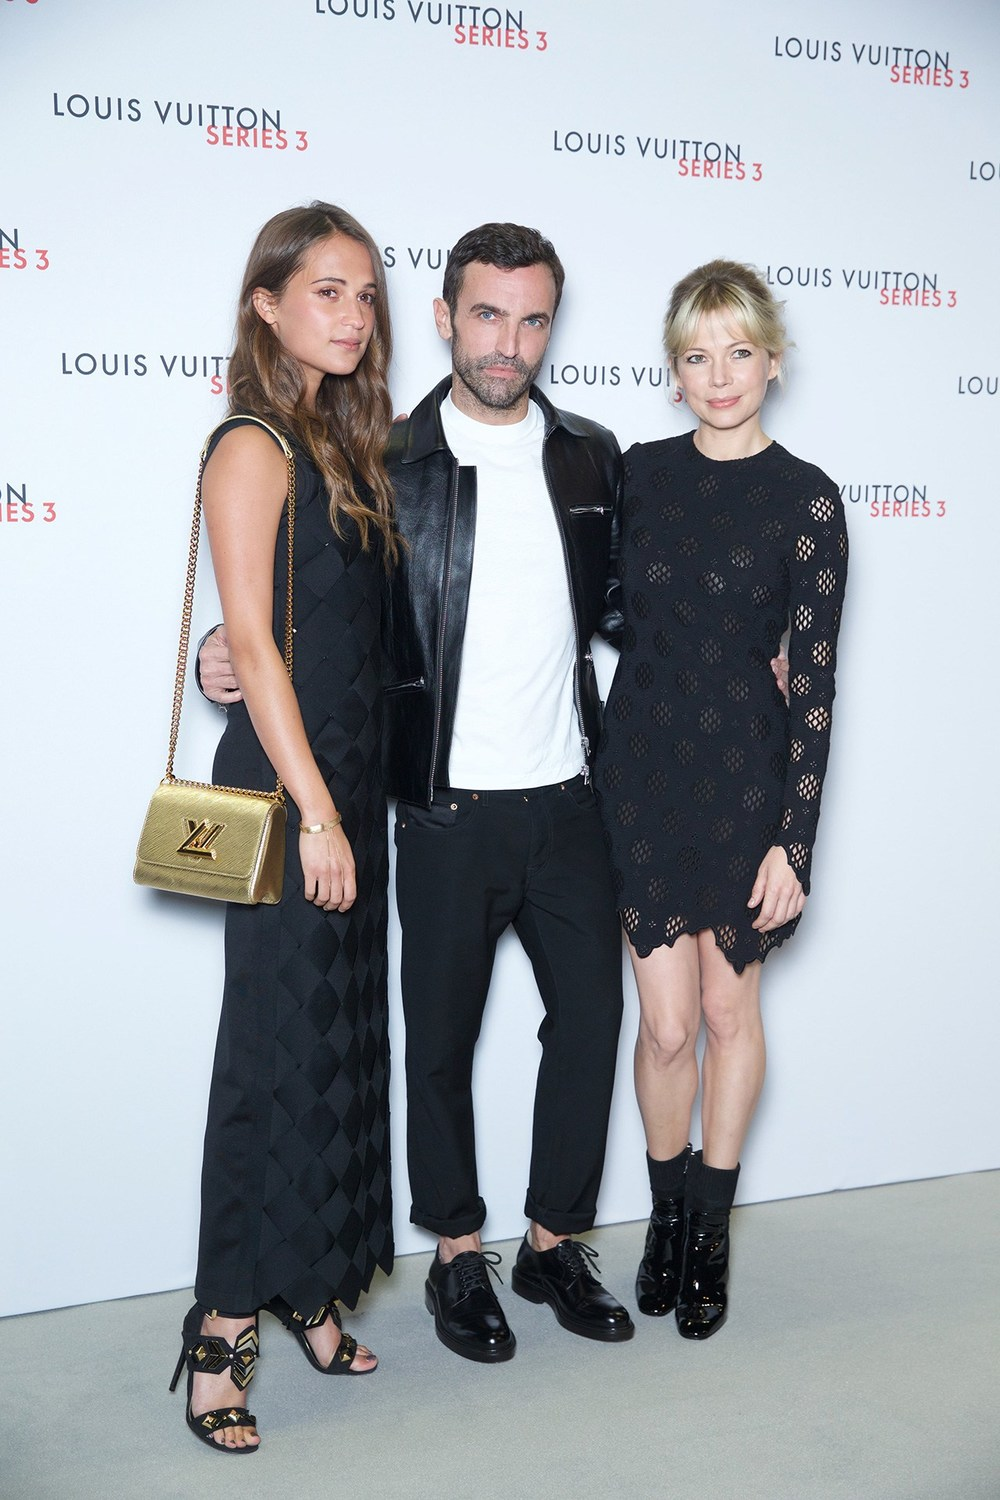 1-Alicia-VIKANDER-Nicolas-GHESQUIERE-vuitton-vogue-21sep15-pr_b.jpg